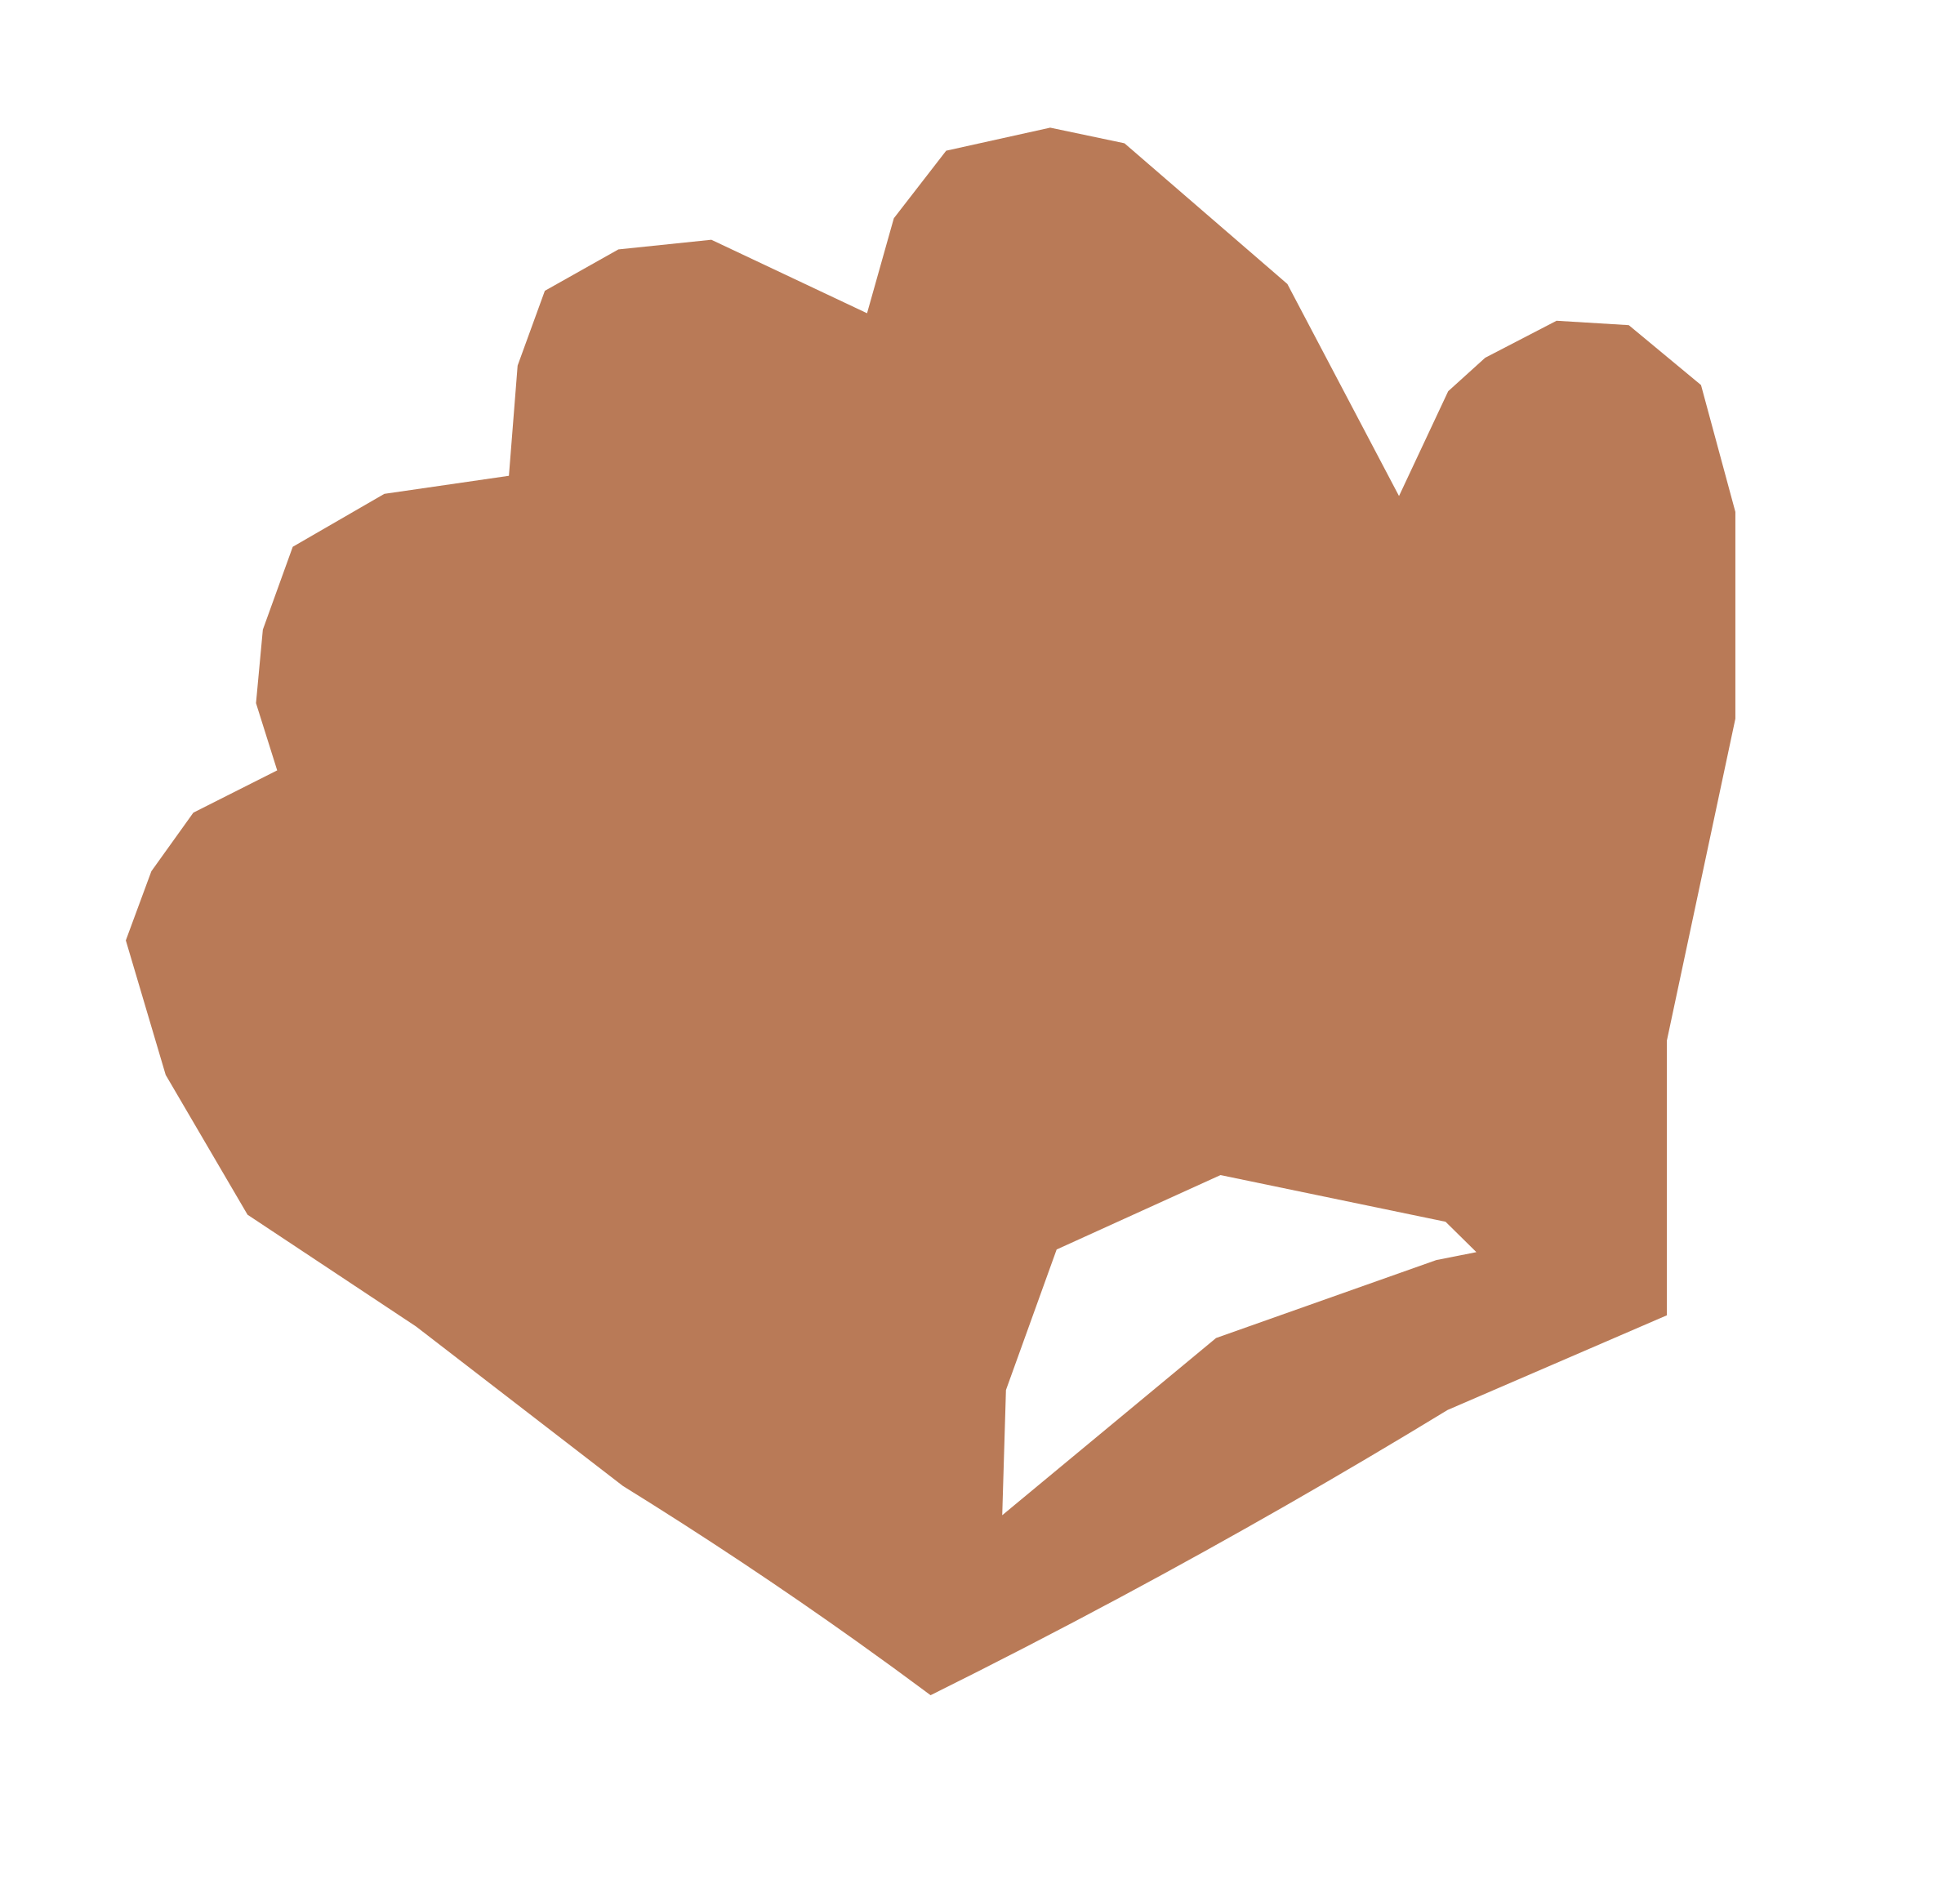 Glove clipart baseball. Refixed icons png free